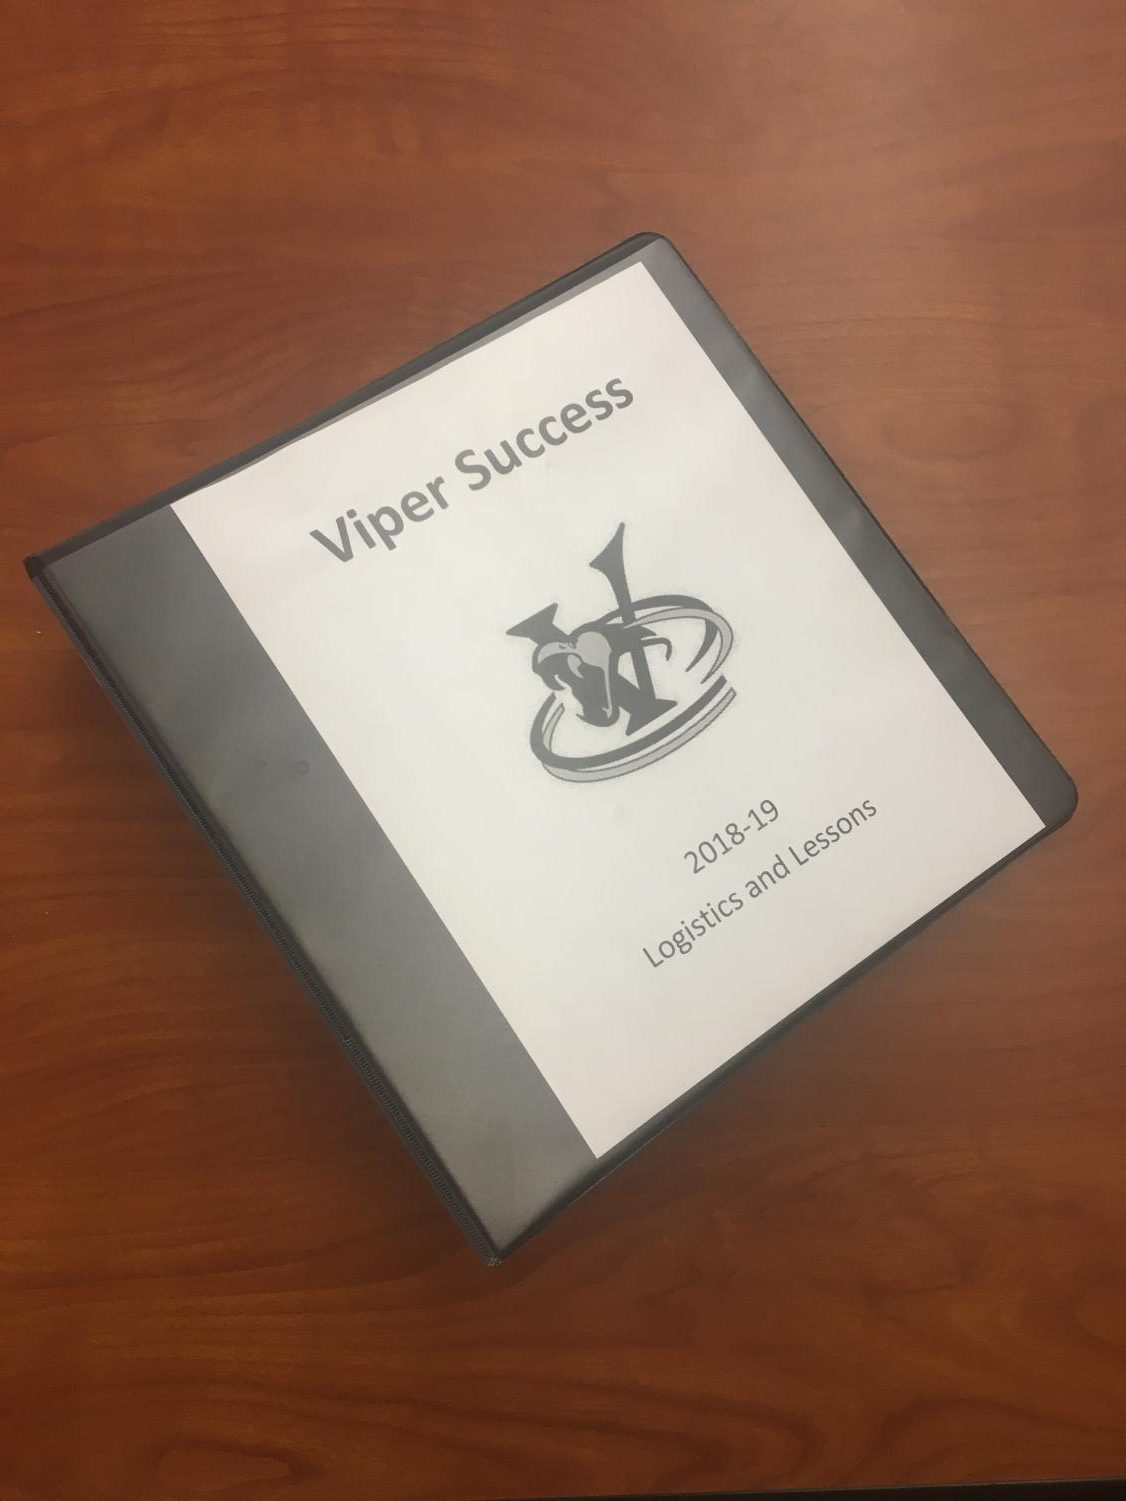 A copy of VHS's lessons and logistics for the Viper Success program, which now includes a structured study hall.